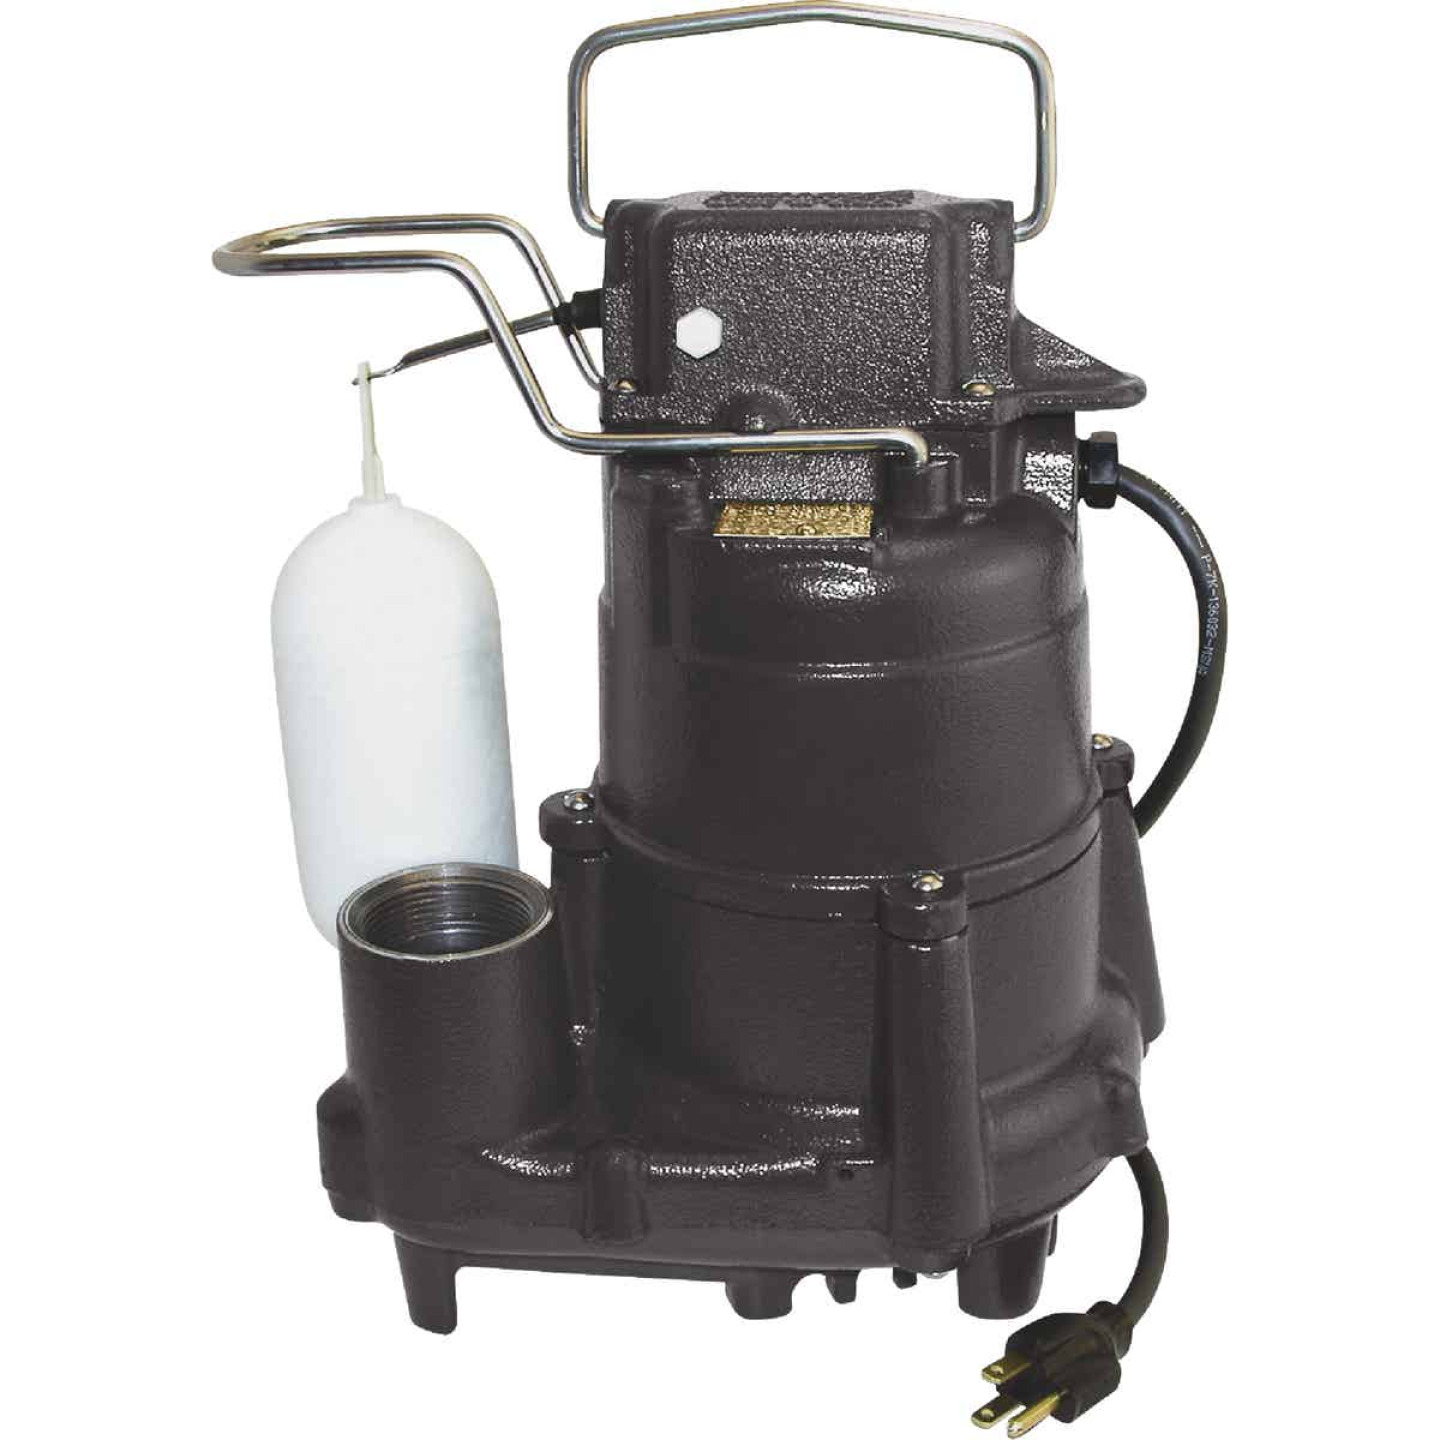 Do it Best 1/2 HP 115V Cast-Iron Submersible Sump Pump Image 1